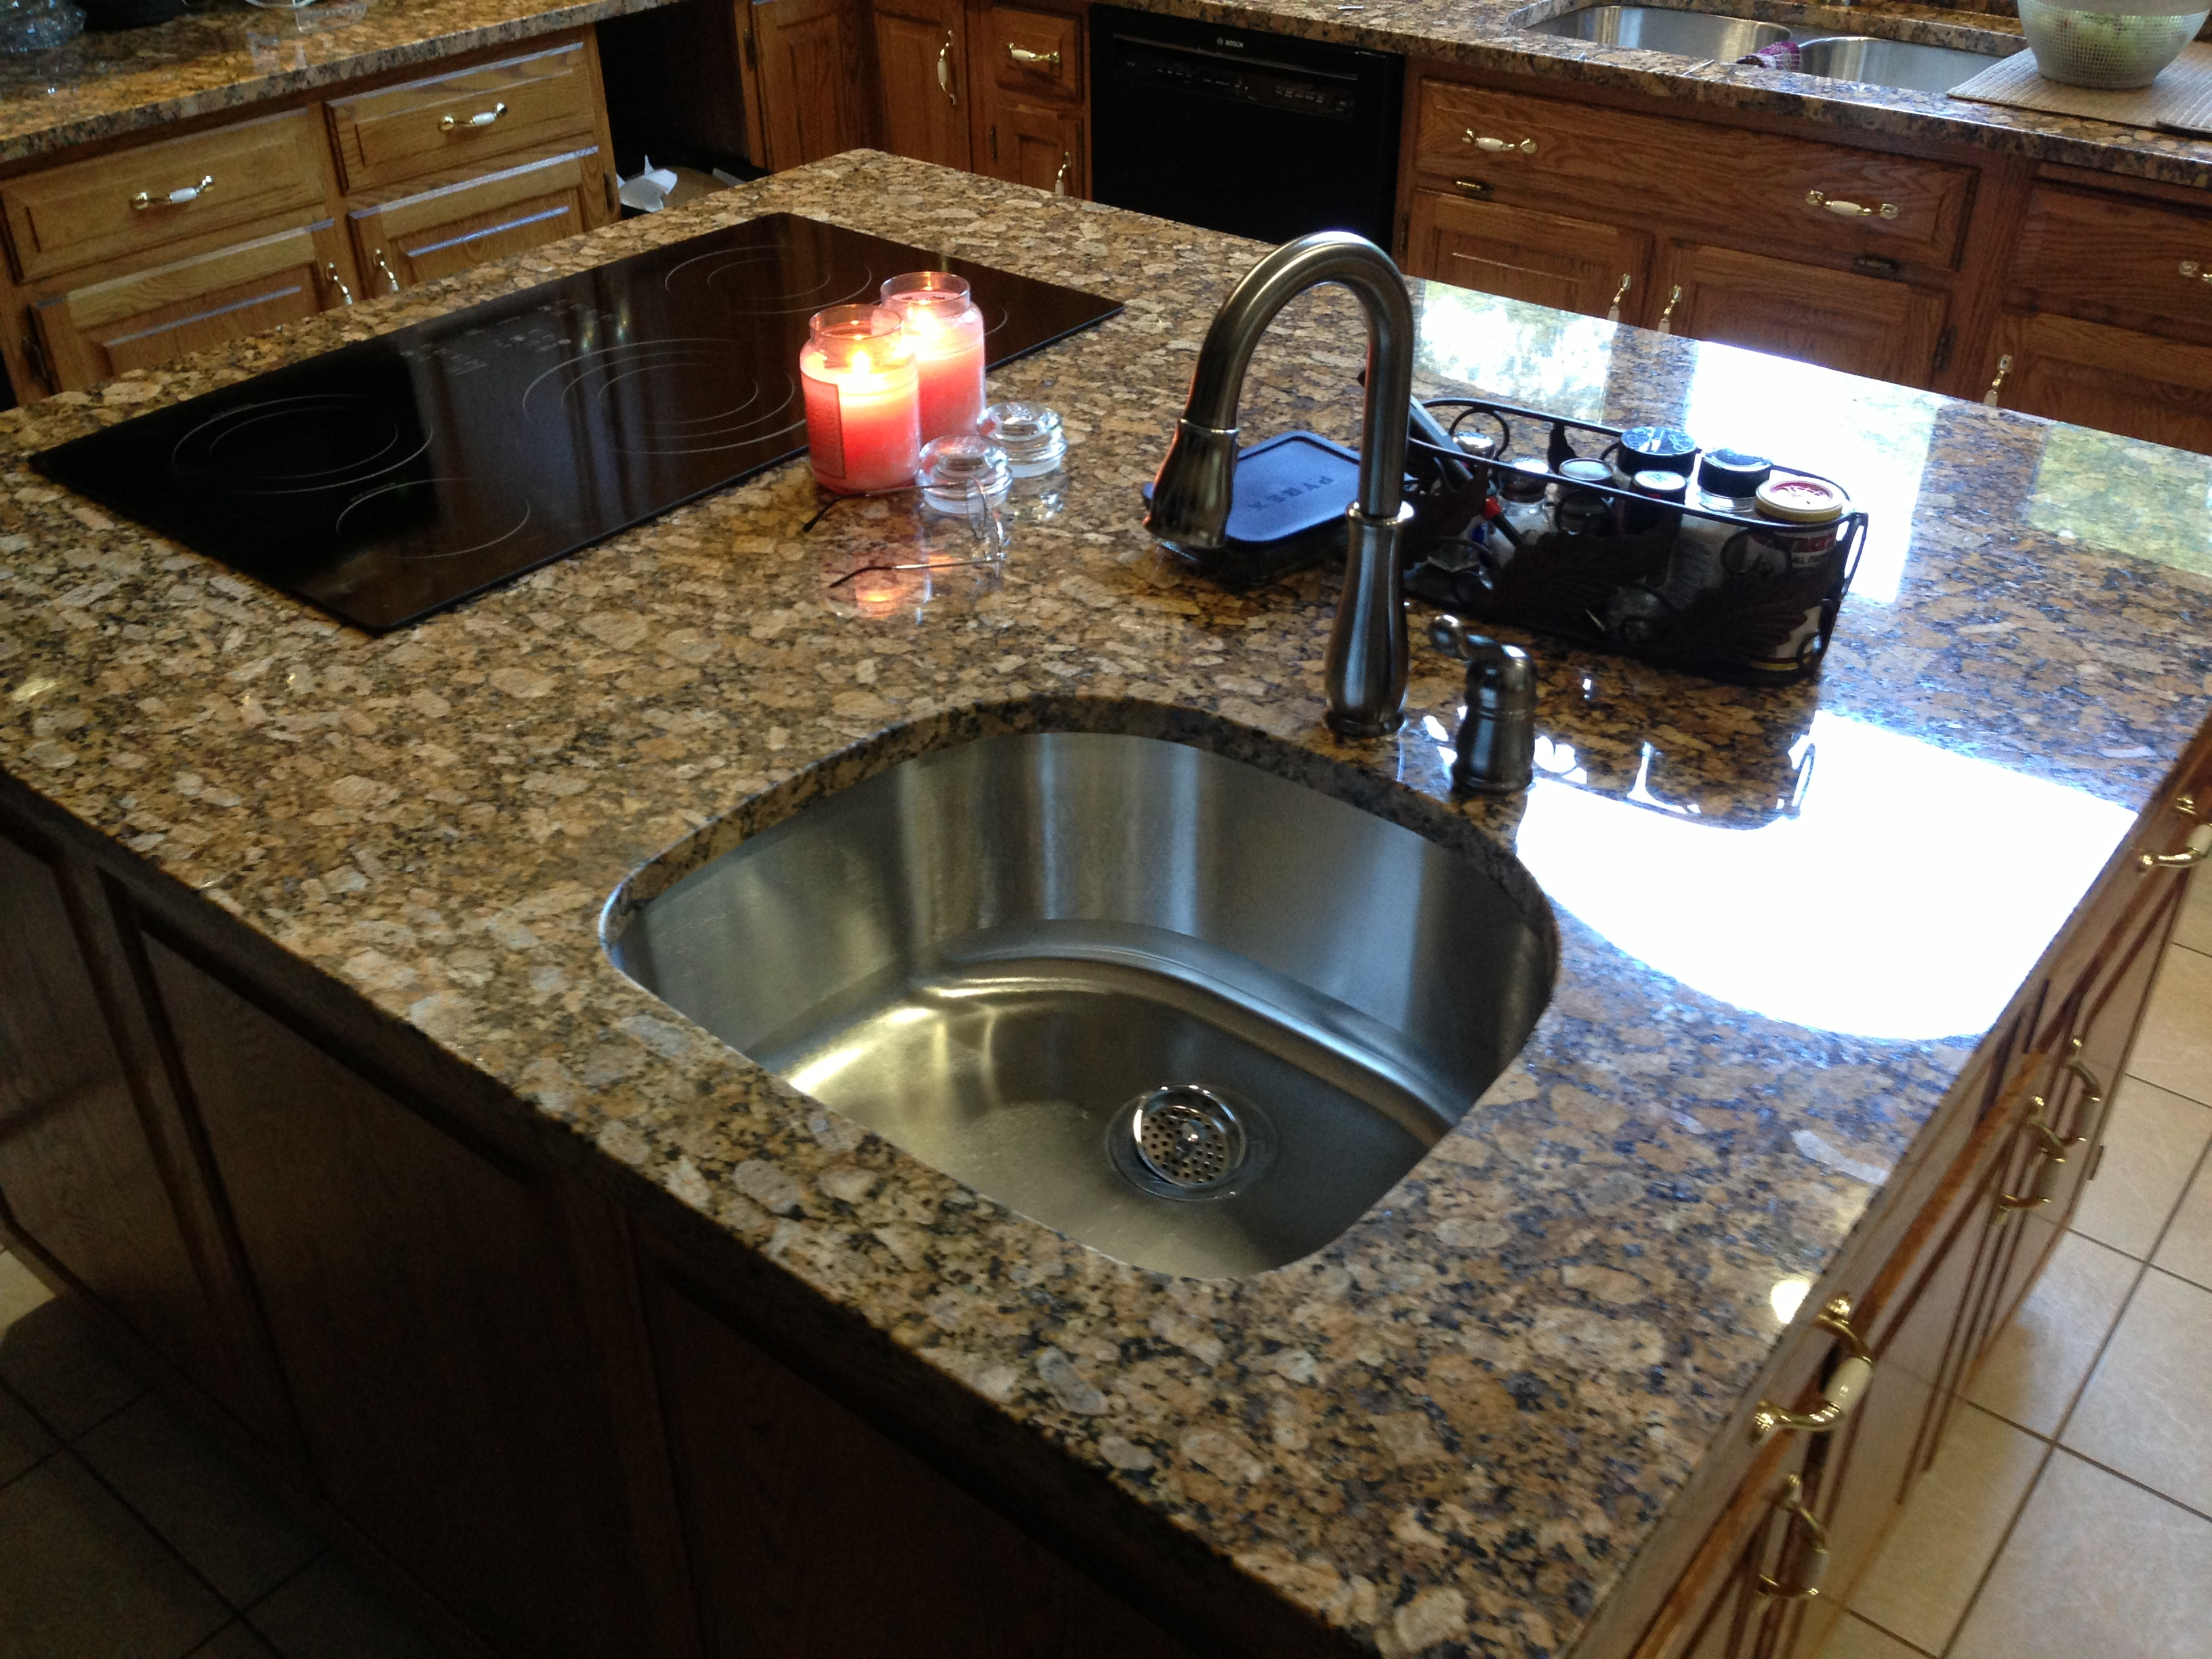 out goal bathroom in granite get countertop countertops our is or the at make that your cabinet wanted ve sure take kitchen middleman to we direct a unnamed price can always you